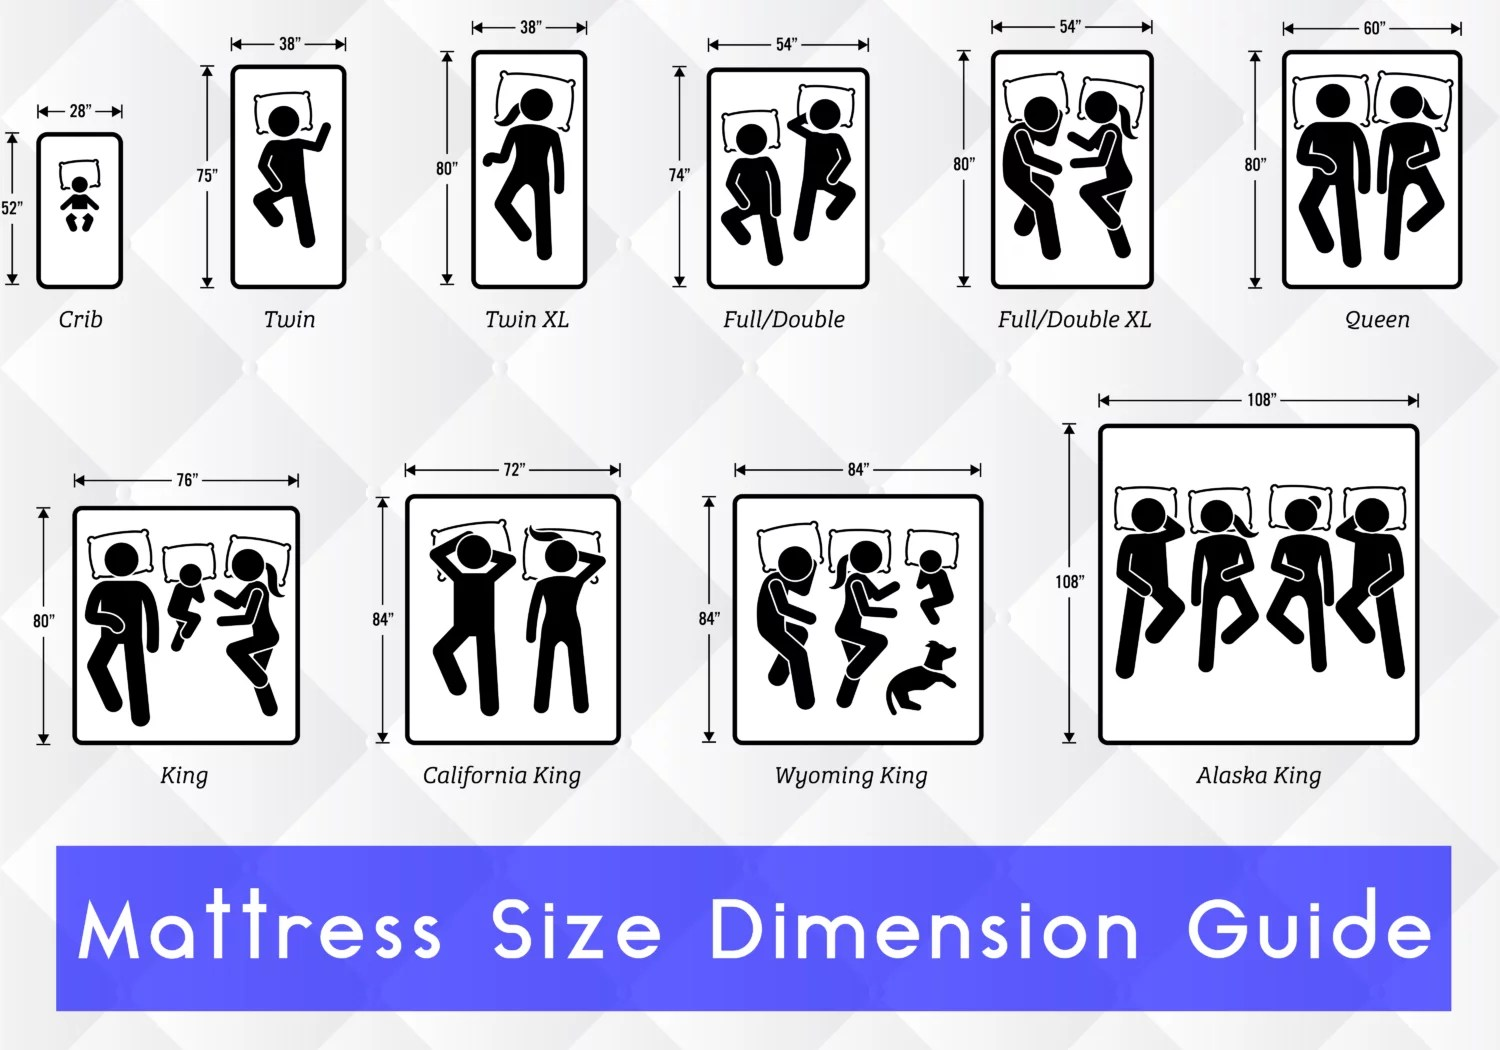 Bunk Bed Dimensions Mattress Size Chart And Mattress Dimesions Mattress Size